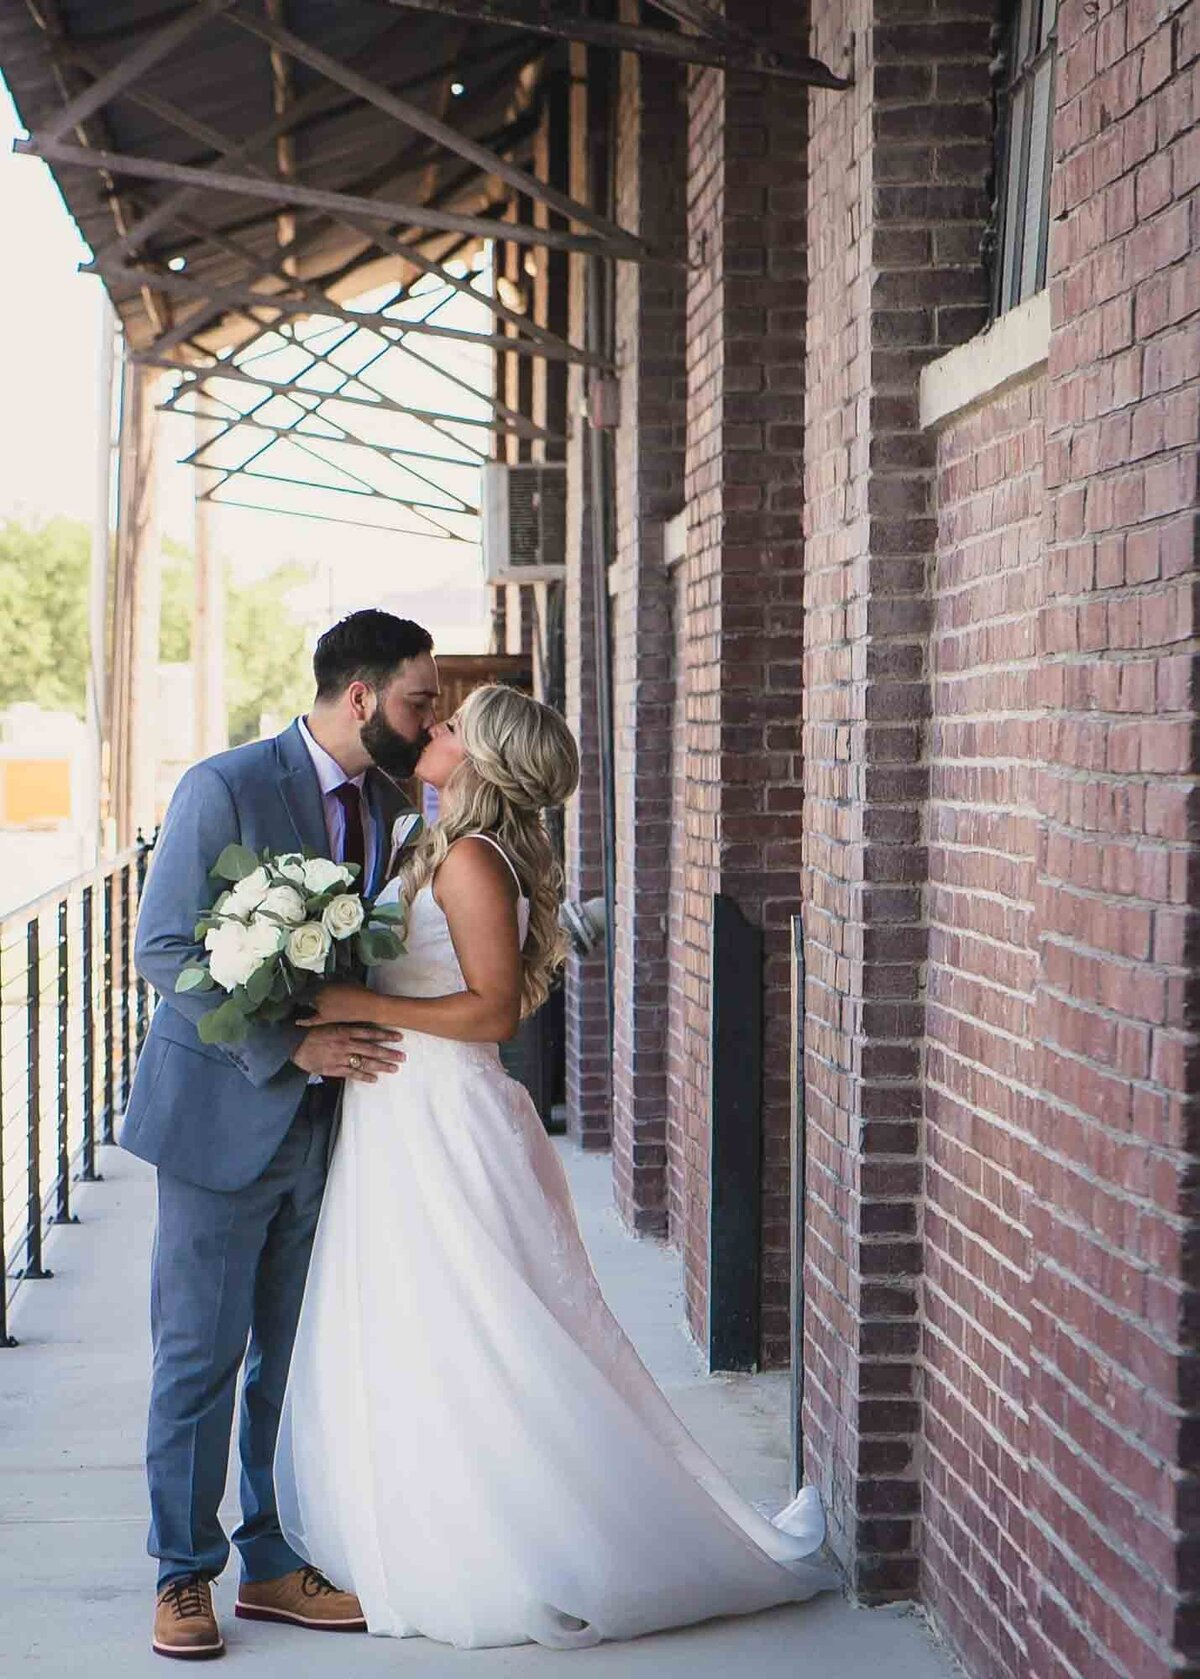 East-McKinney-Luxury-Wedding-Venue-Dallas-Fort-Worth-McKinney-Texas-248